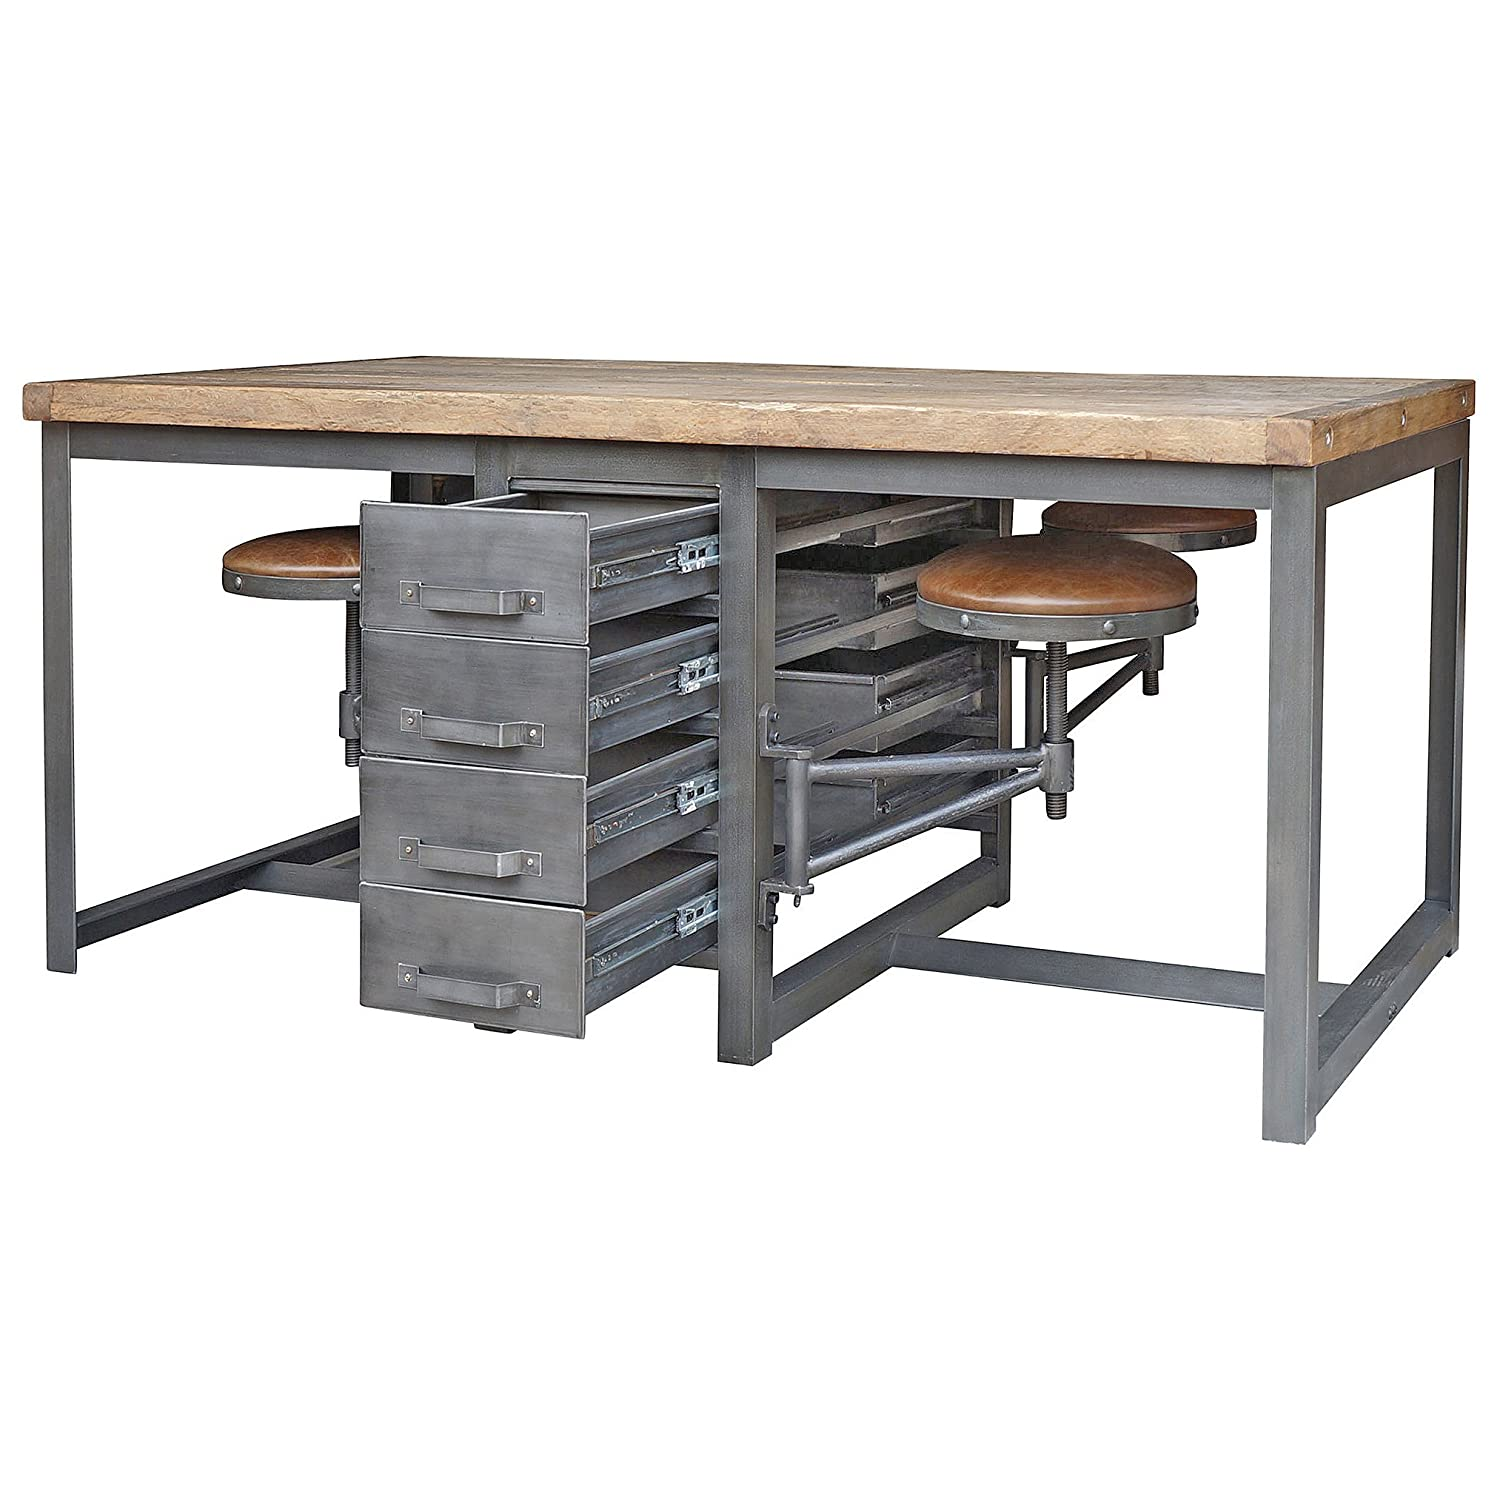 work table office. Amazon.com: Wilkes Industrial Loft Reclaimed Pine Iron 4 Swivel Stools Desk Dining Table: Kitchen \u0026 Work Table Office